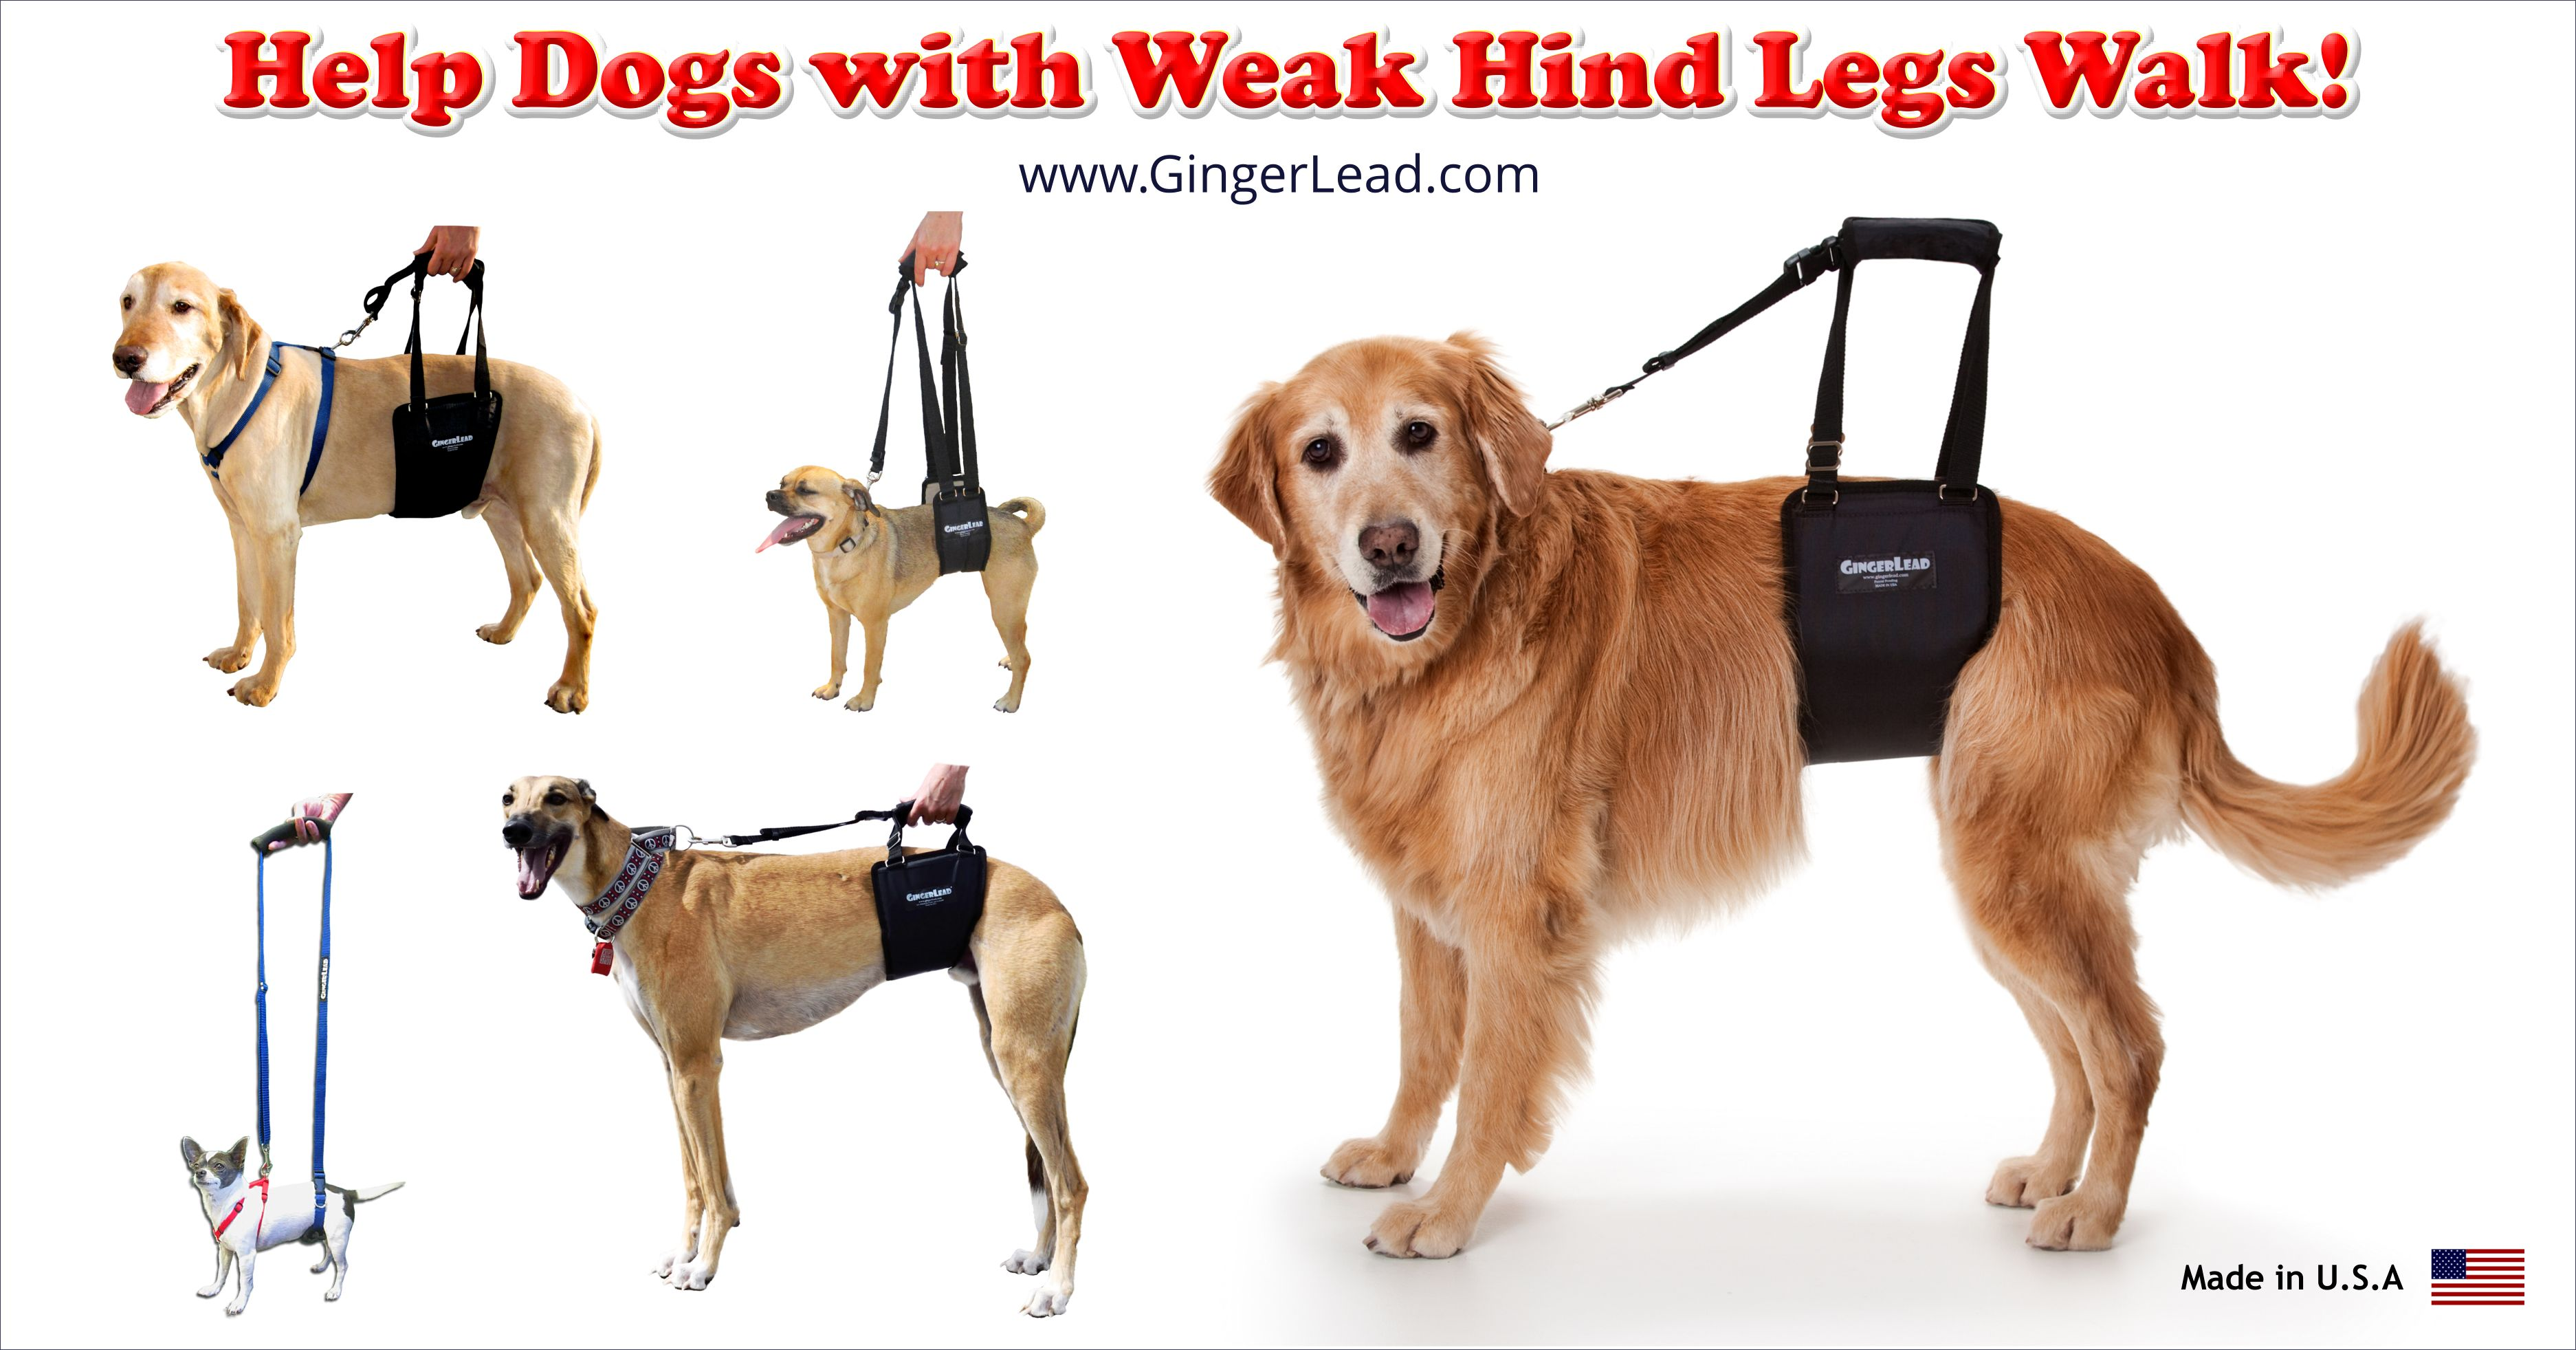 Gingerlead Helps Older Or Disabled Dogs Needing Some Assistance